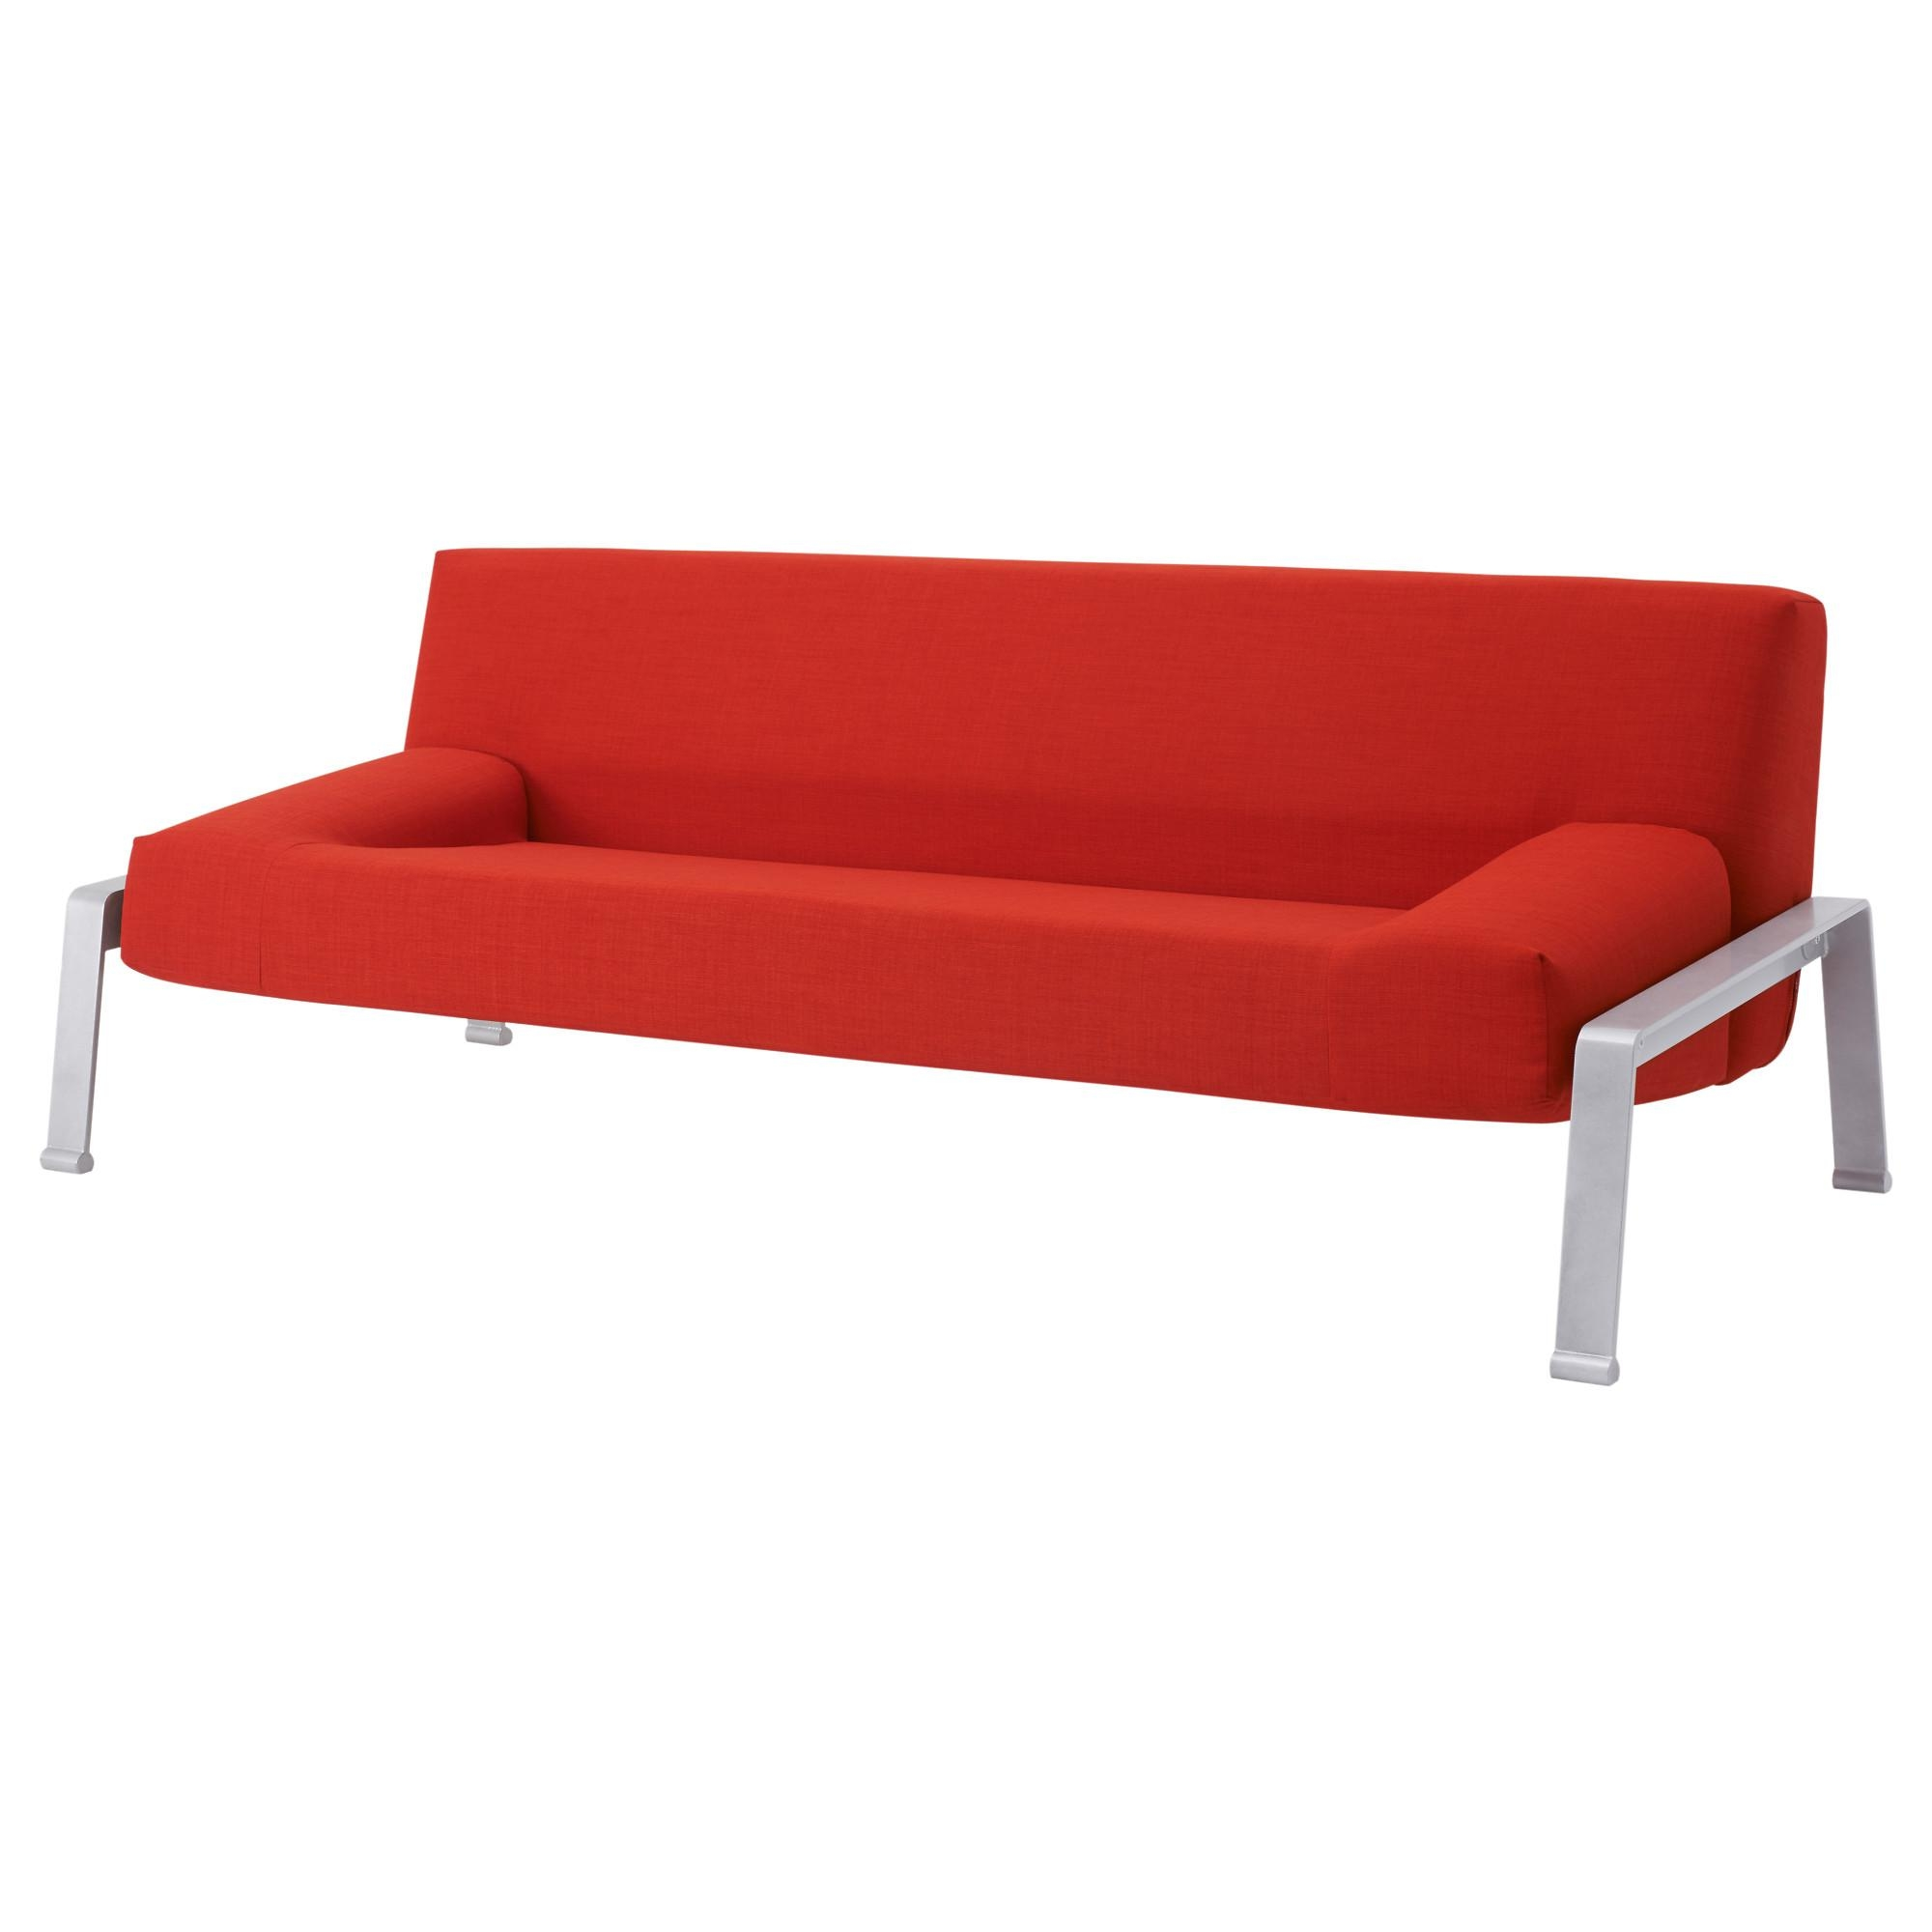 Sofa Beds & Futons – Ikea Throughout Red Sectional Sleeper Sofas (View 17 of 22)